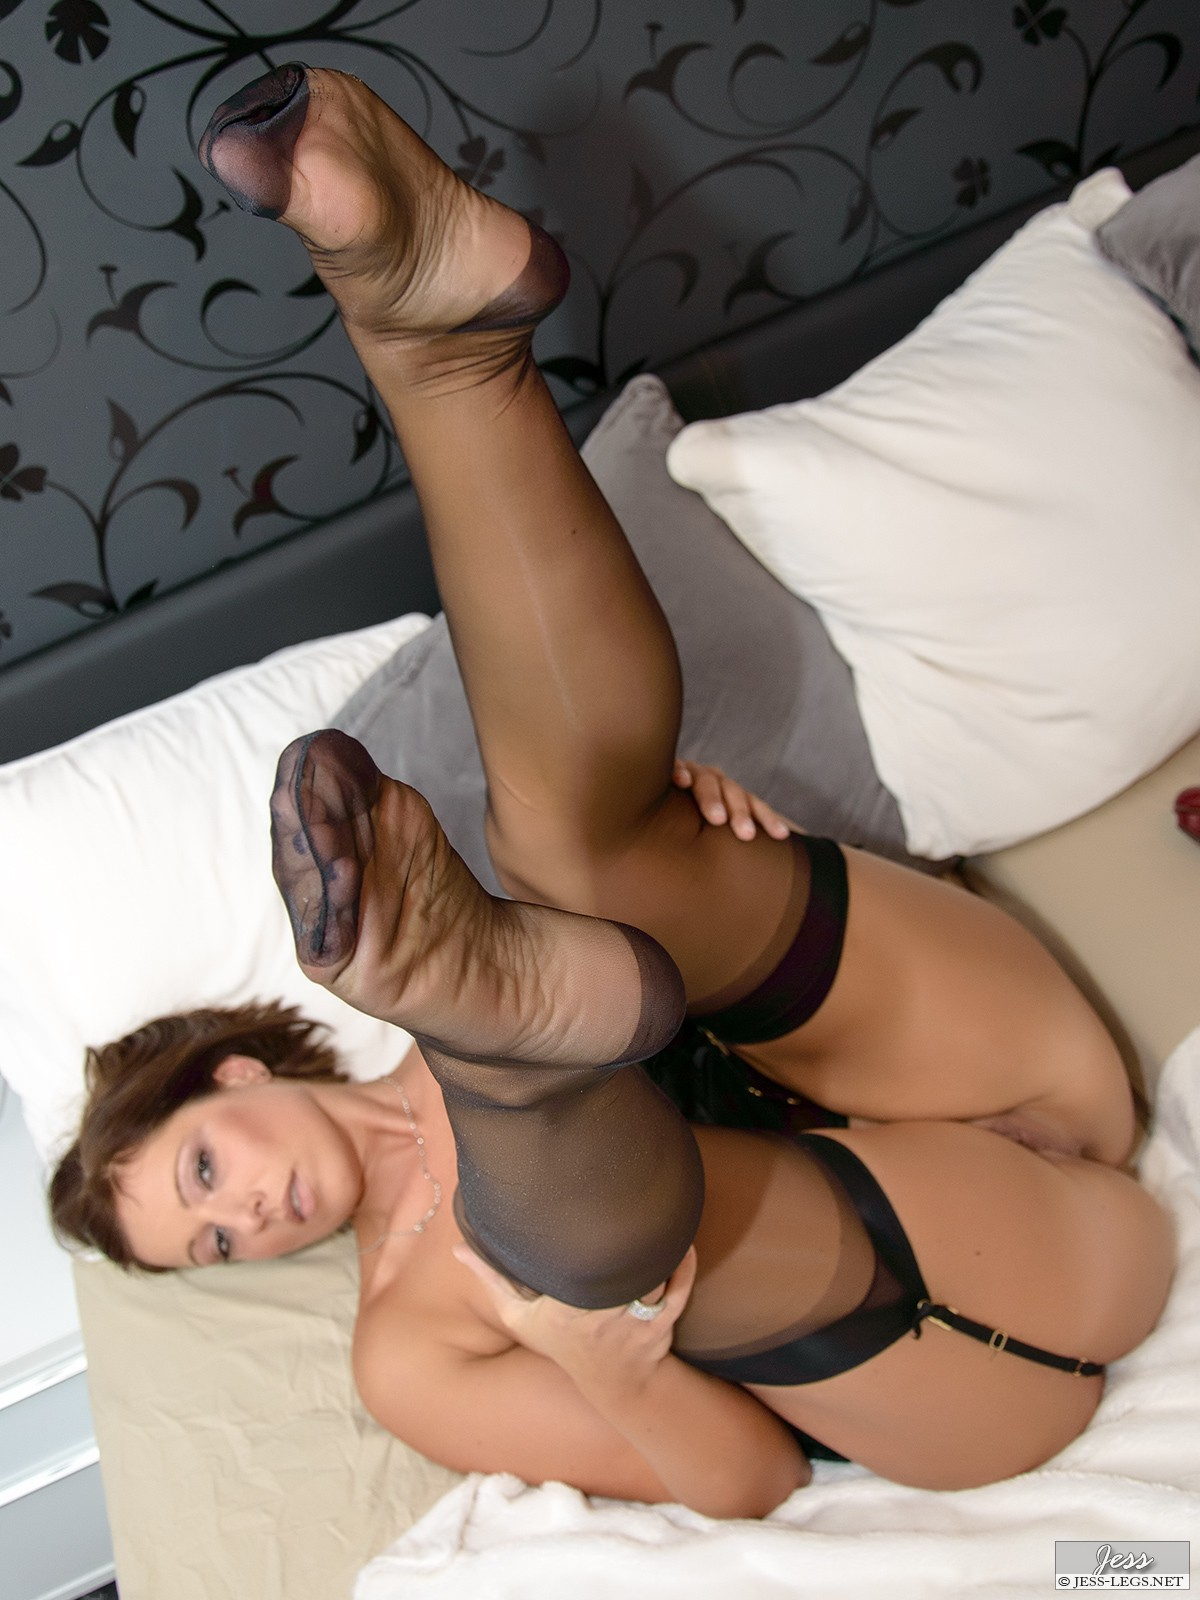 pantyhose stocking nylon porn